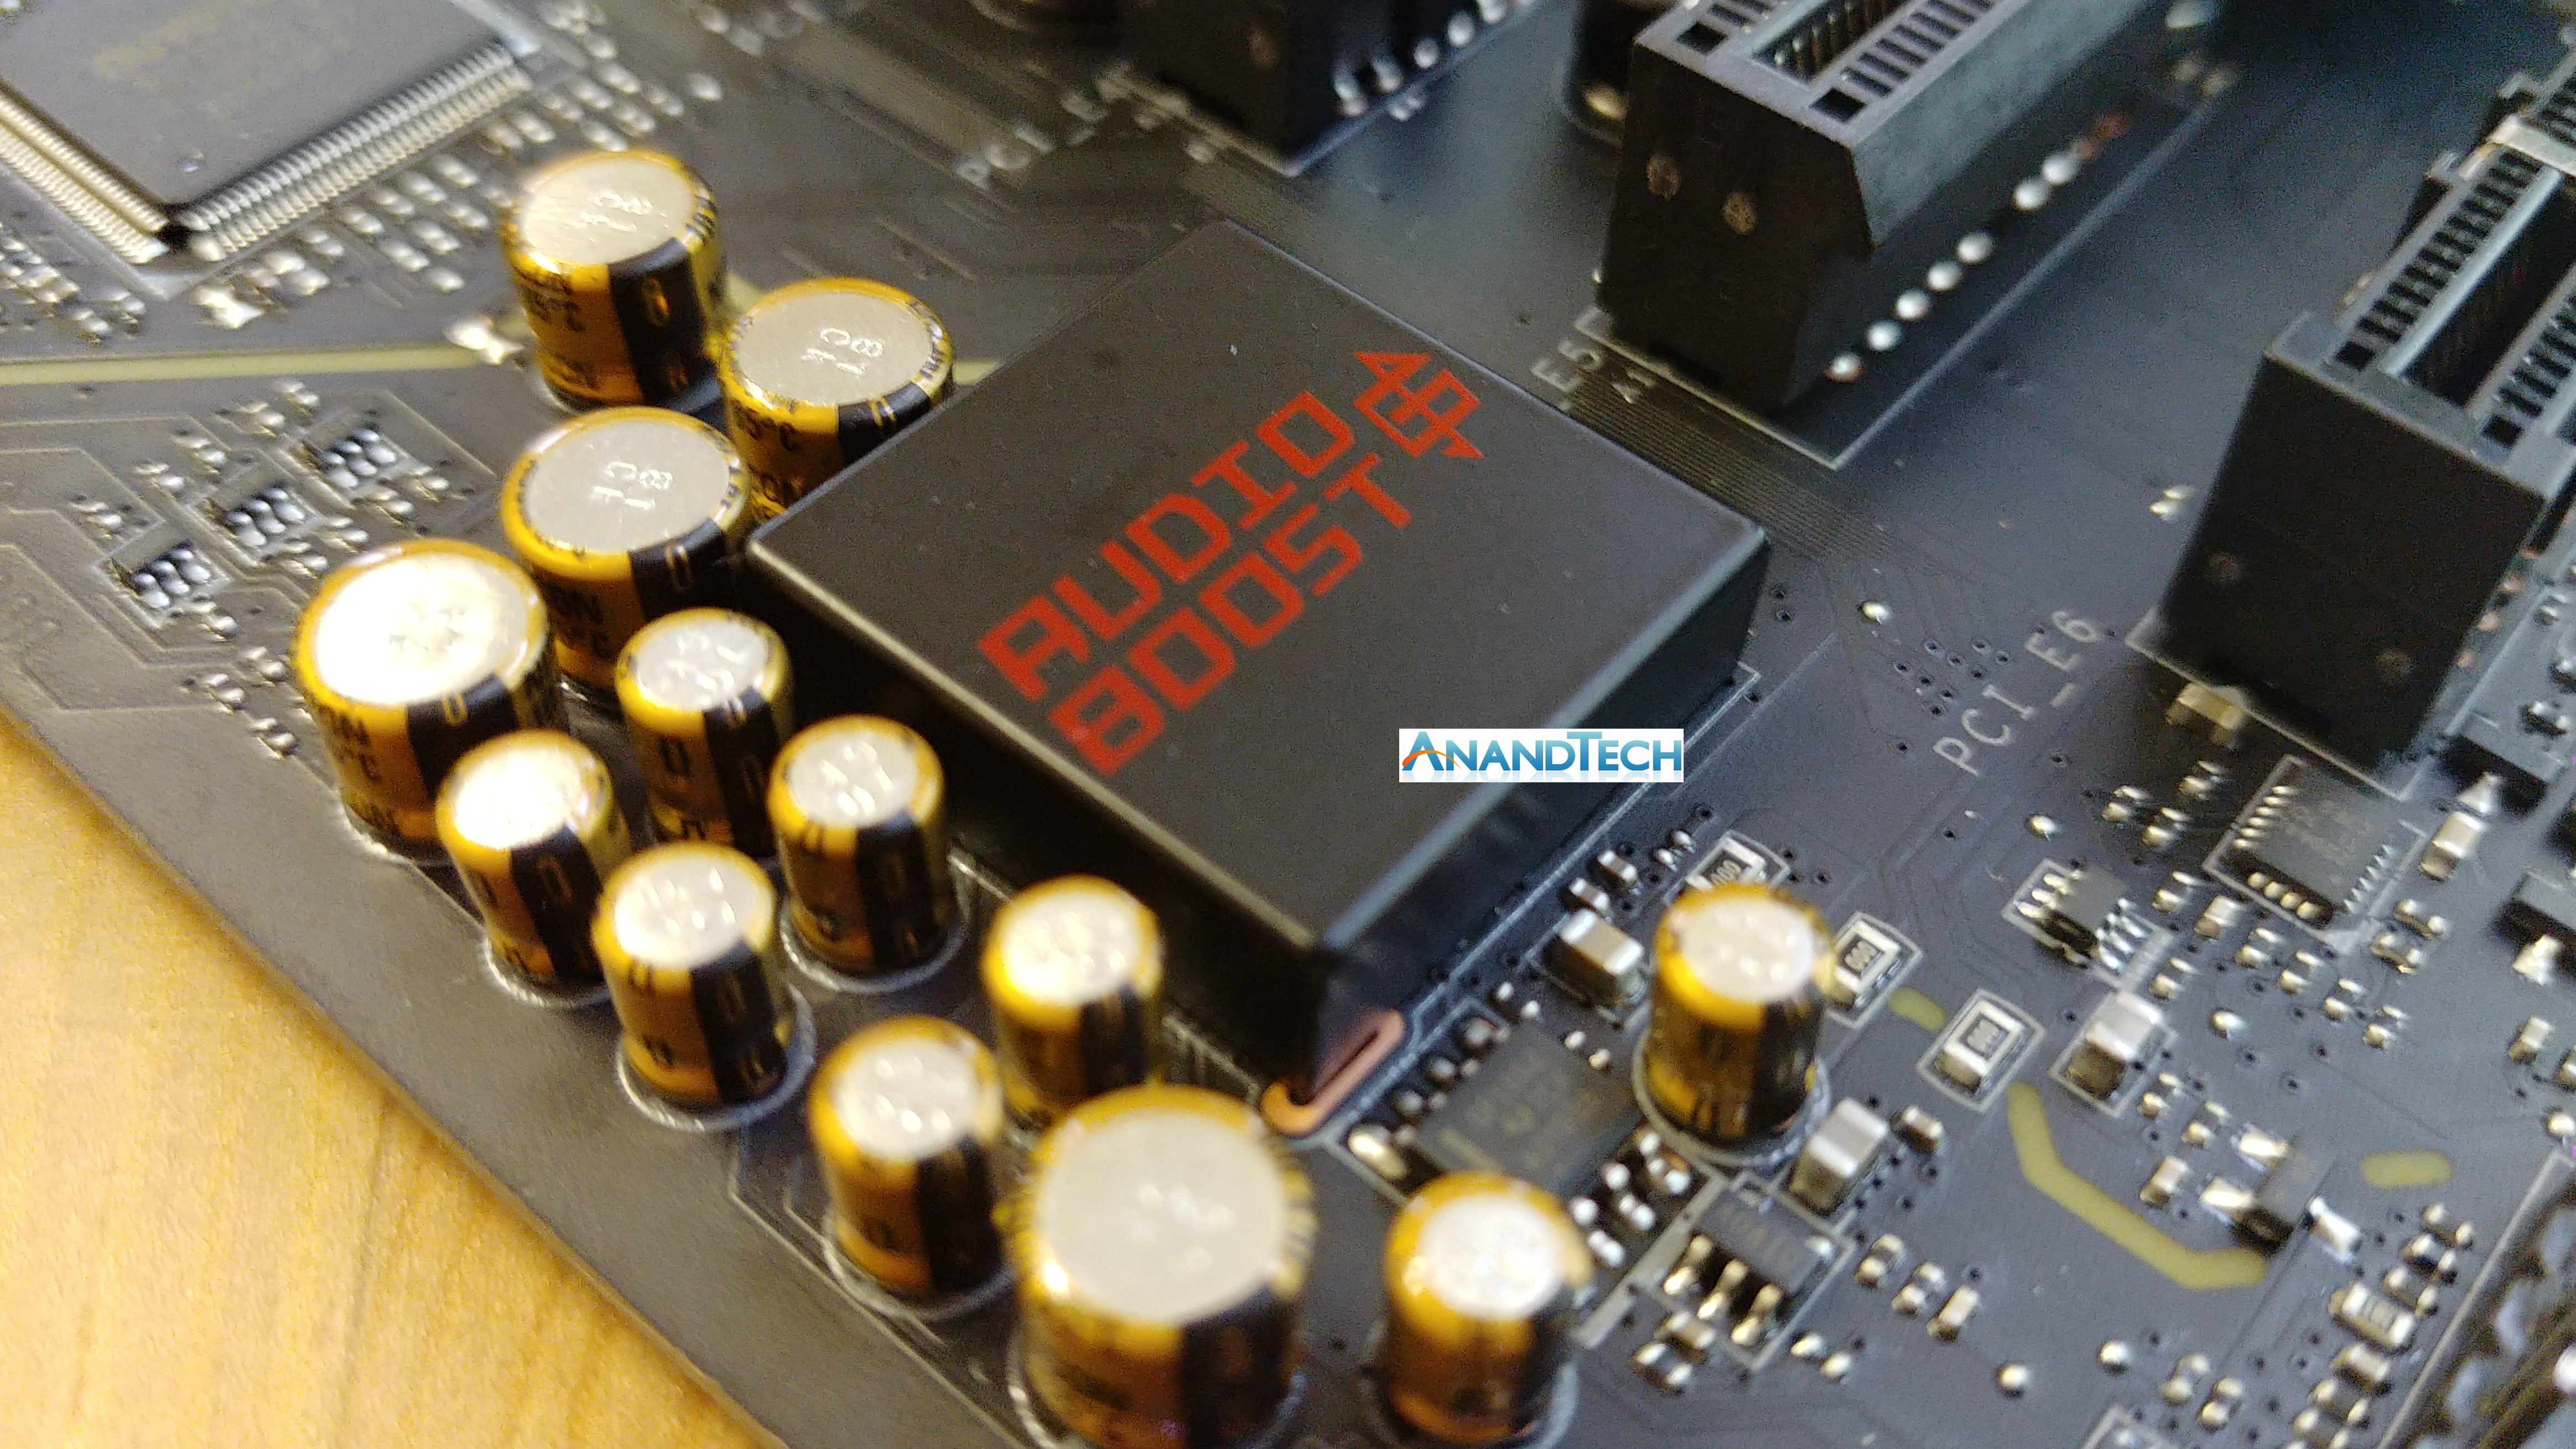 New X470 Chipset and Motherboards: A Focus on Power - The AMD 2nd